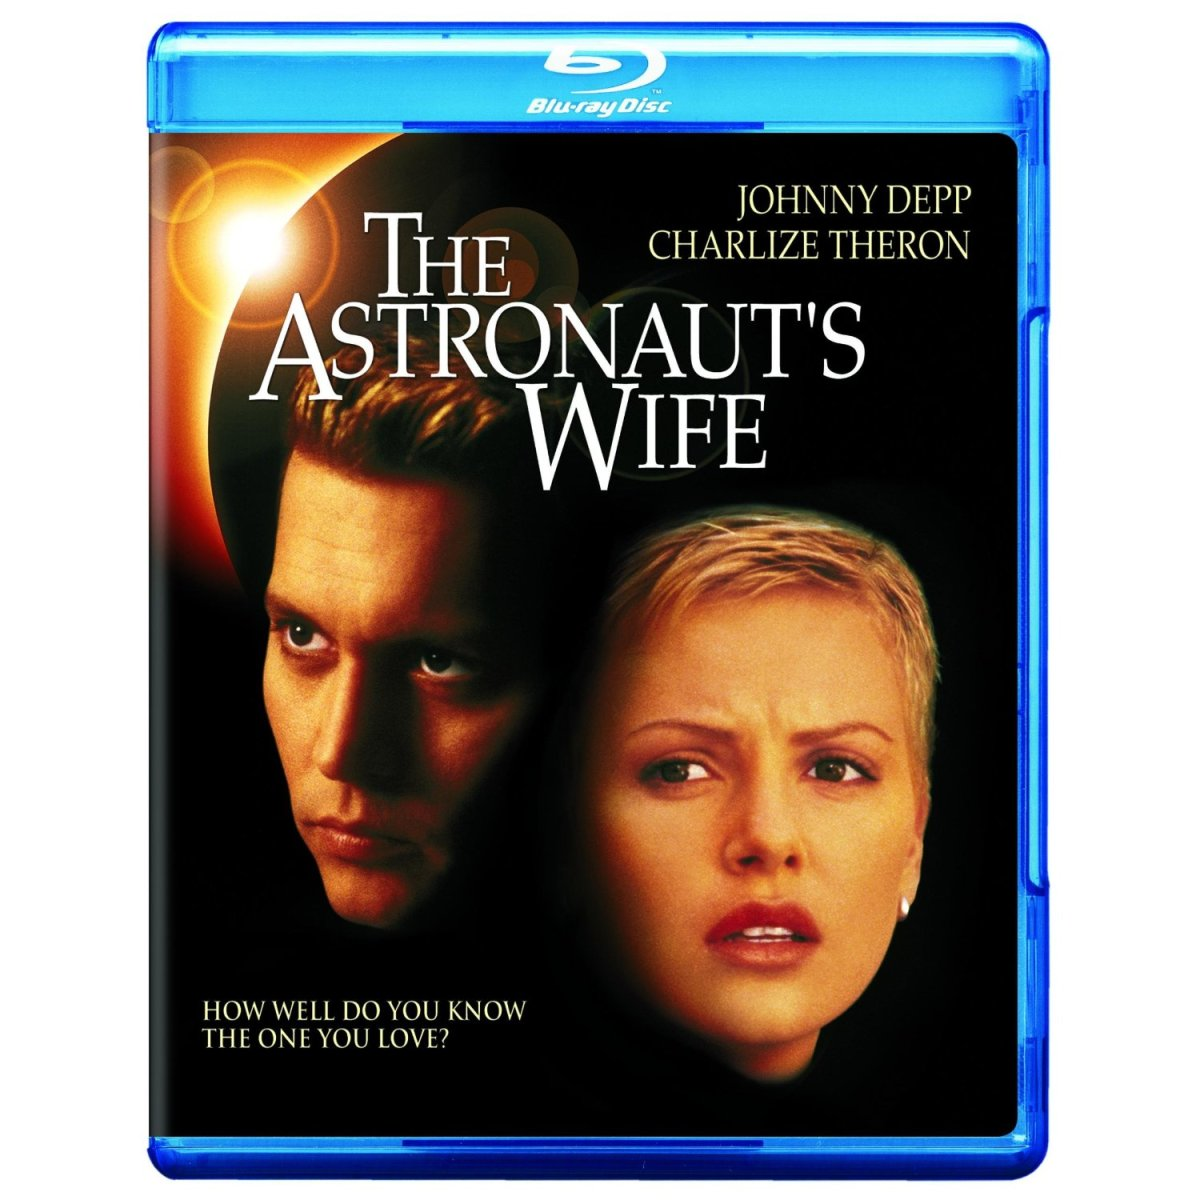 The Astronaut's Wife – Blu-ray Review